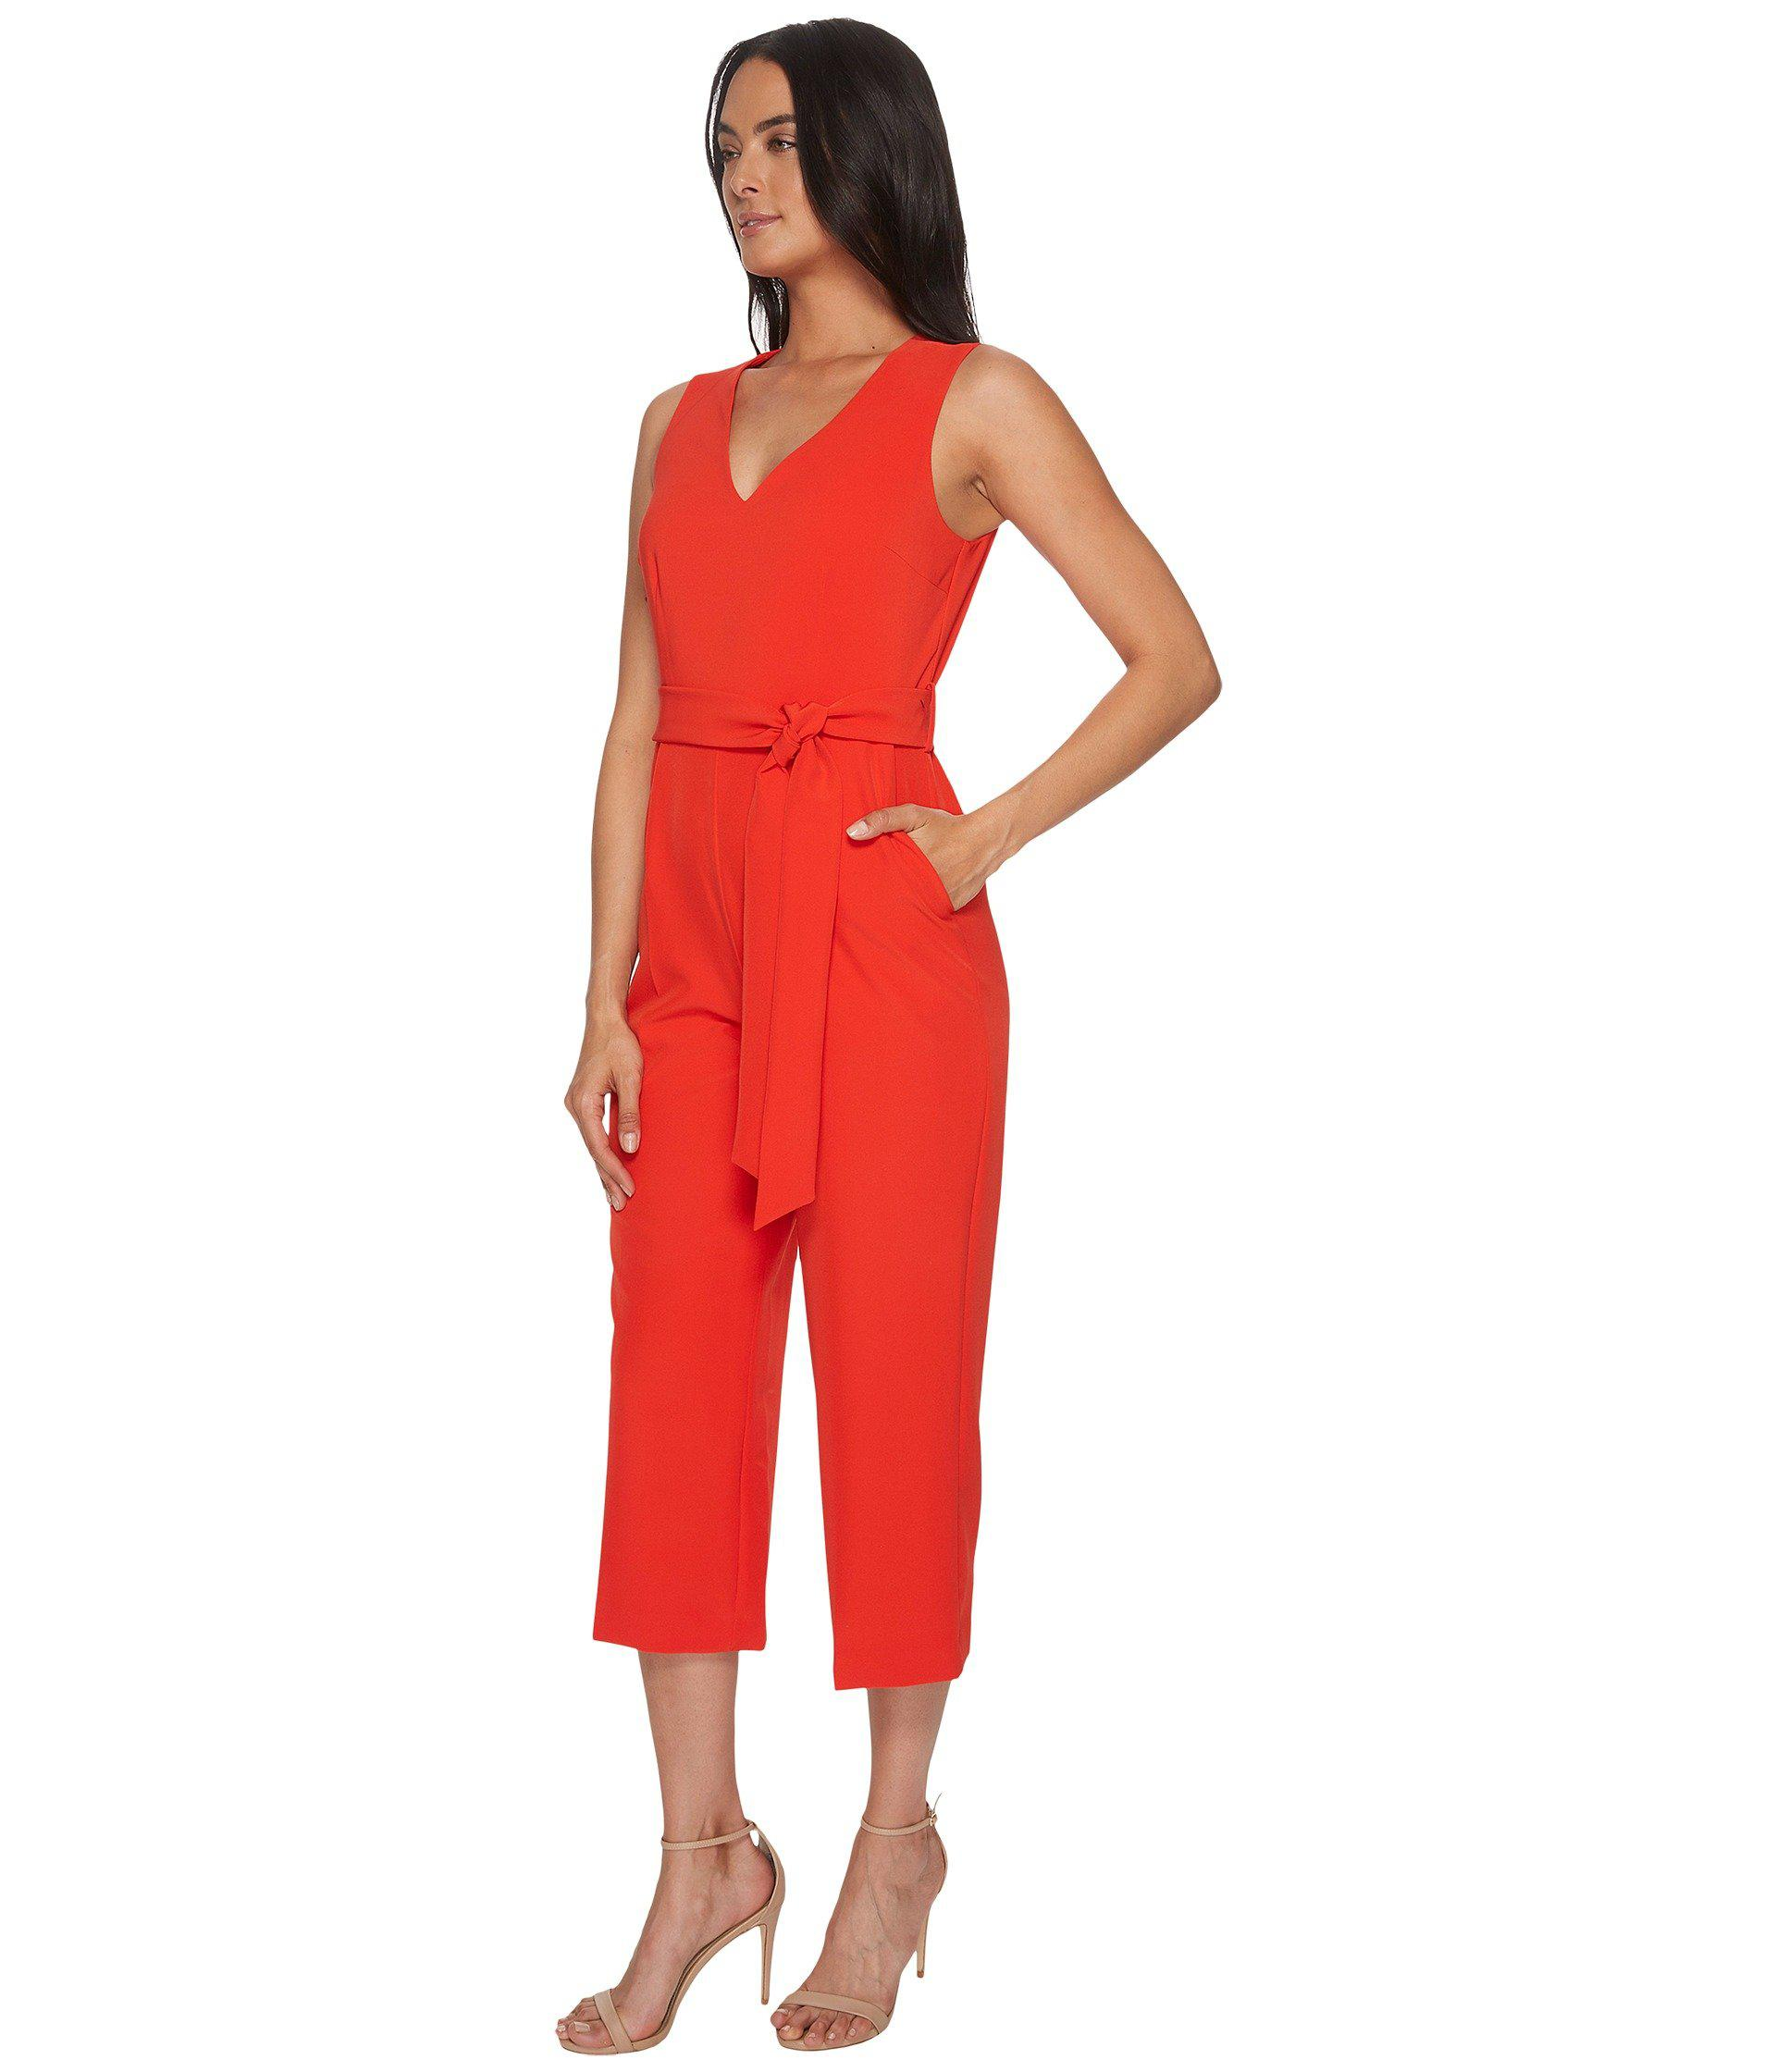 a3b9ef69f538 Lyst - Vince Camuto Sleeveless V-neck Belted Poly Base Jumpsuit in Red -  Save 44%